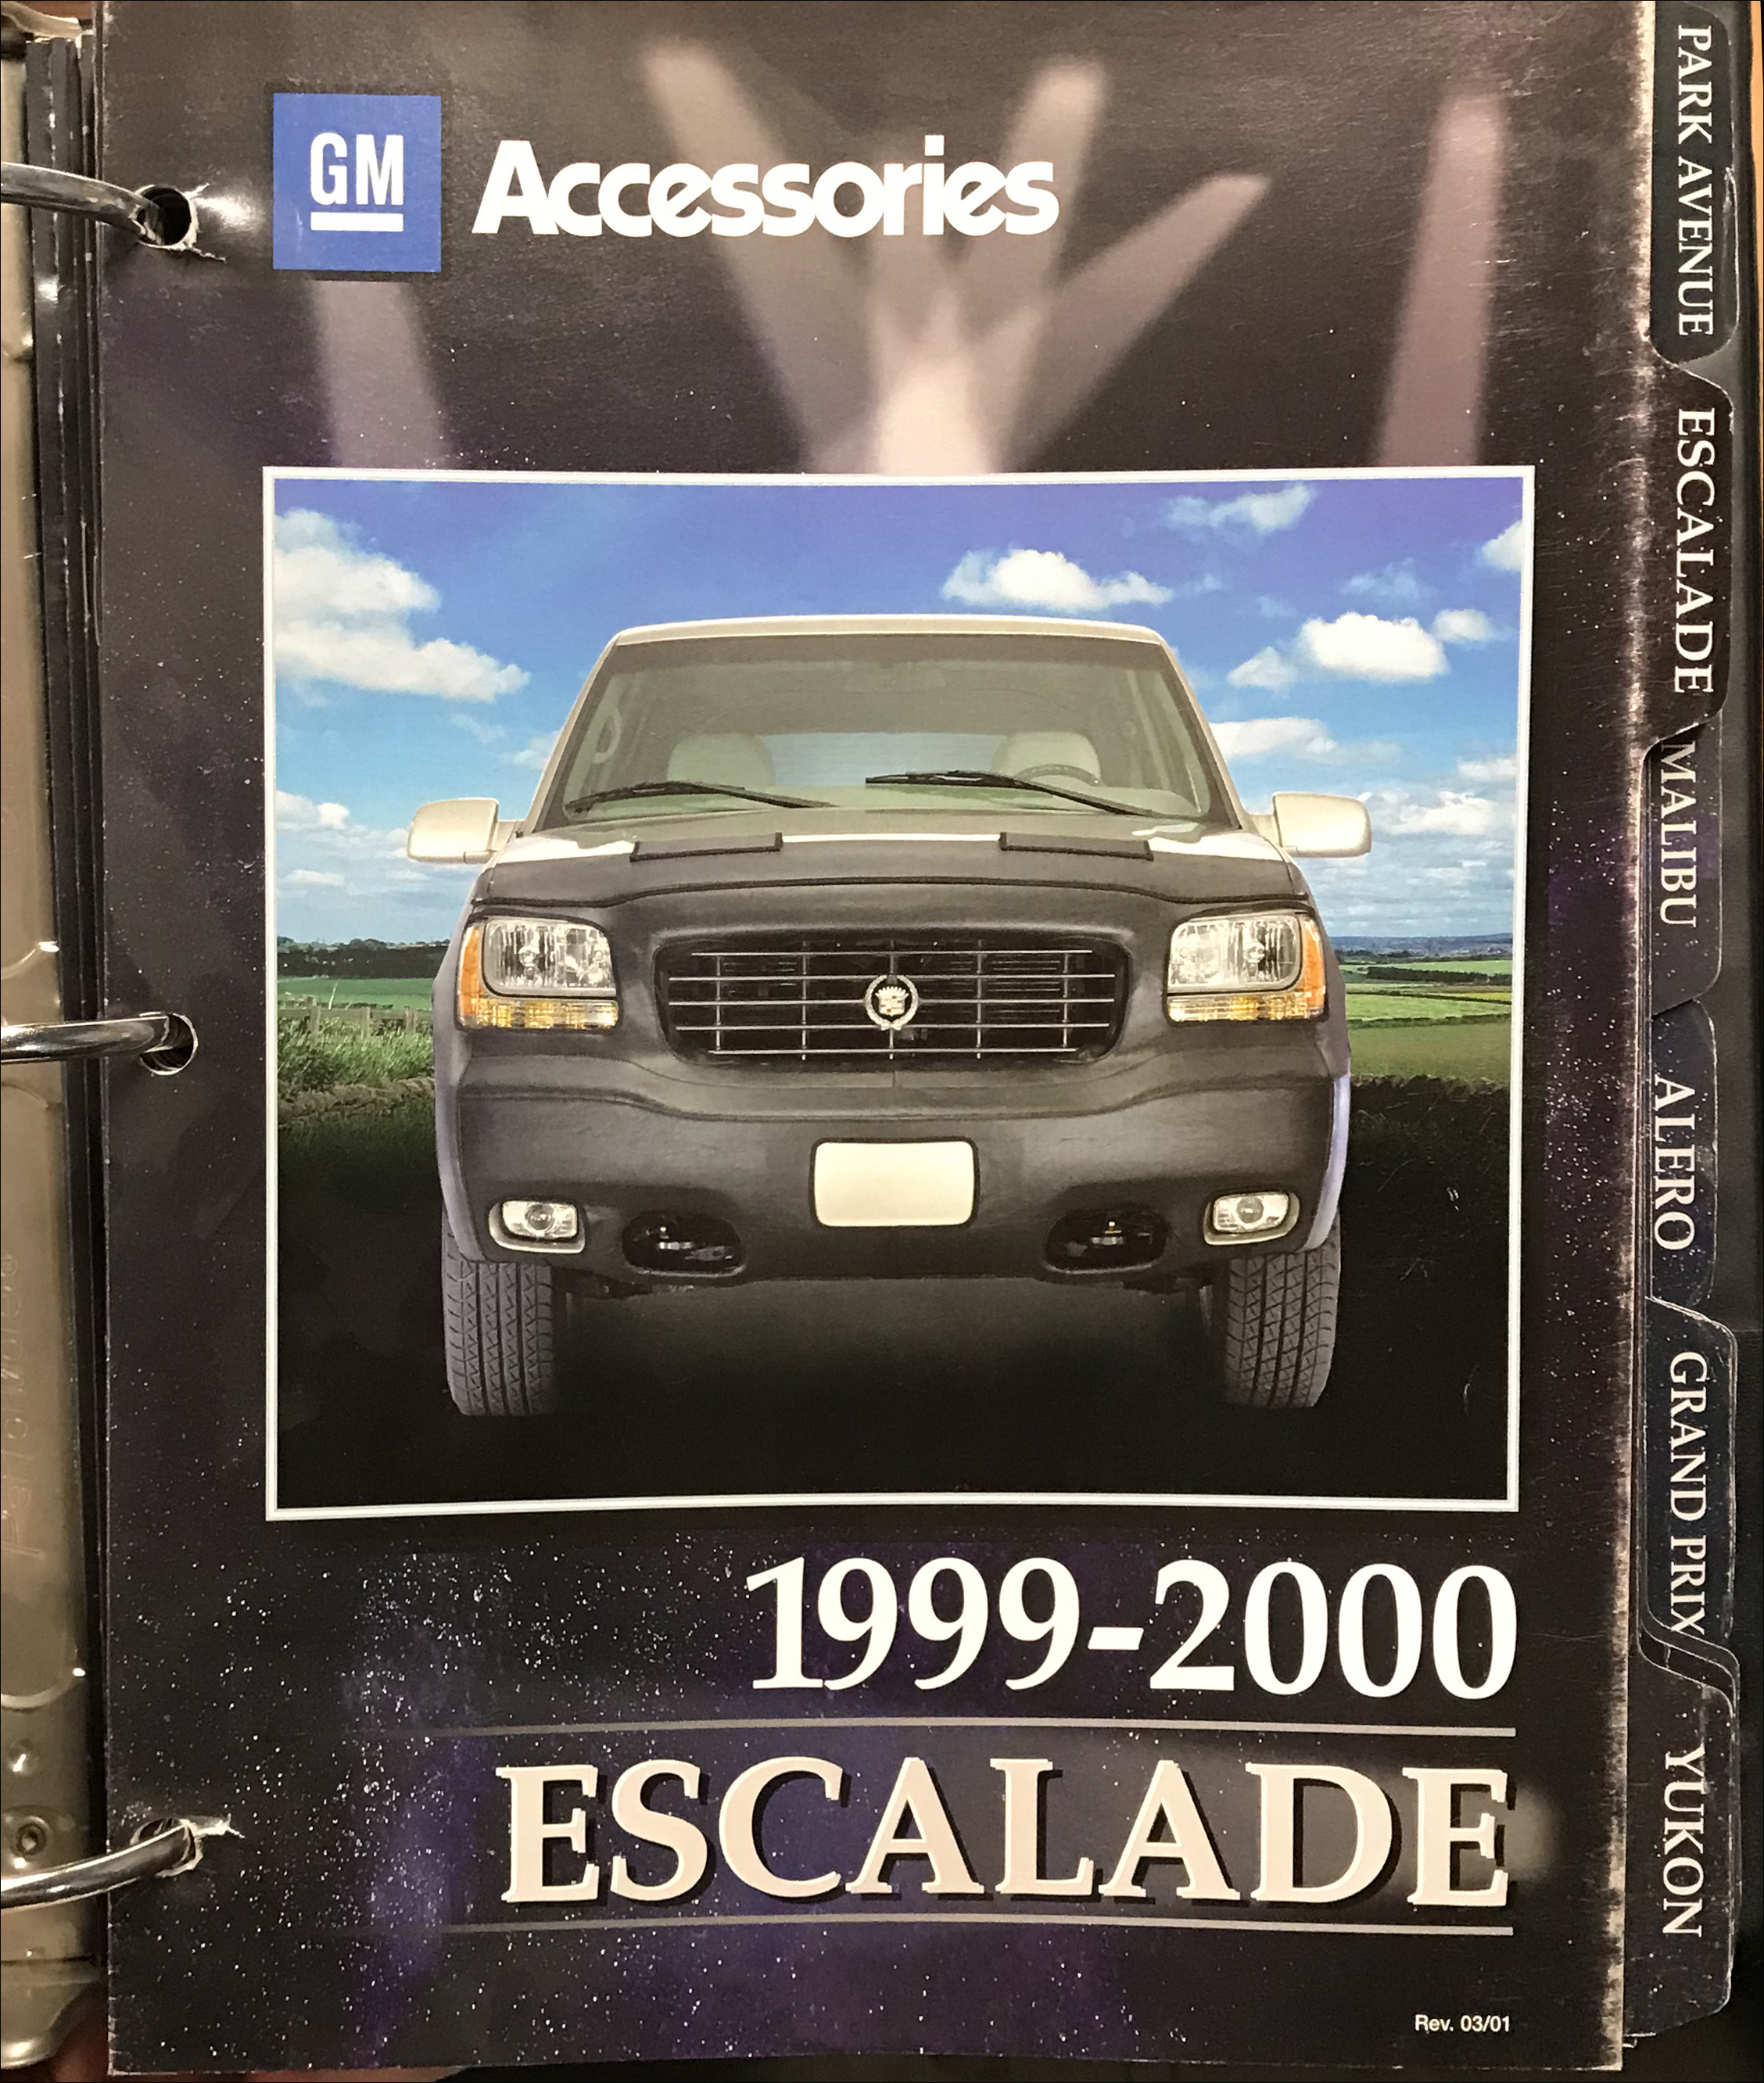 2000-2001 GM Accessories Dealer Album Original